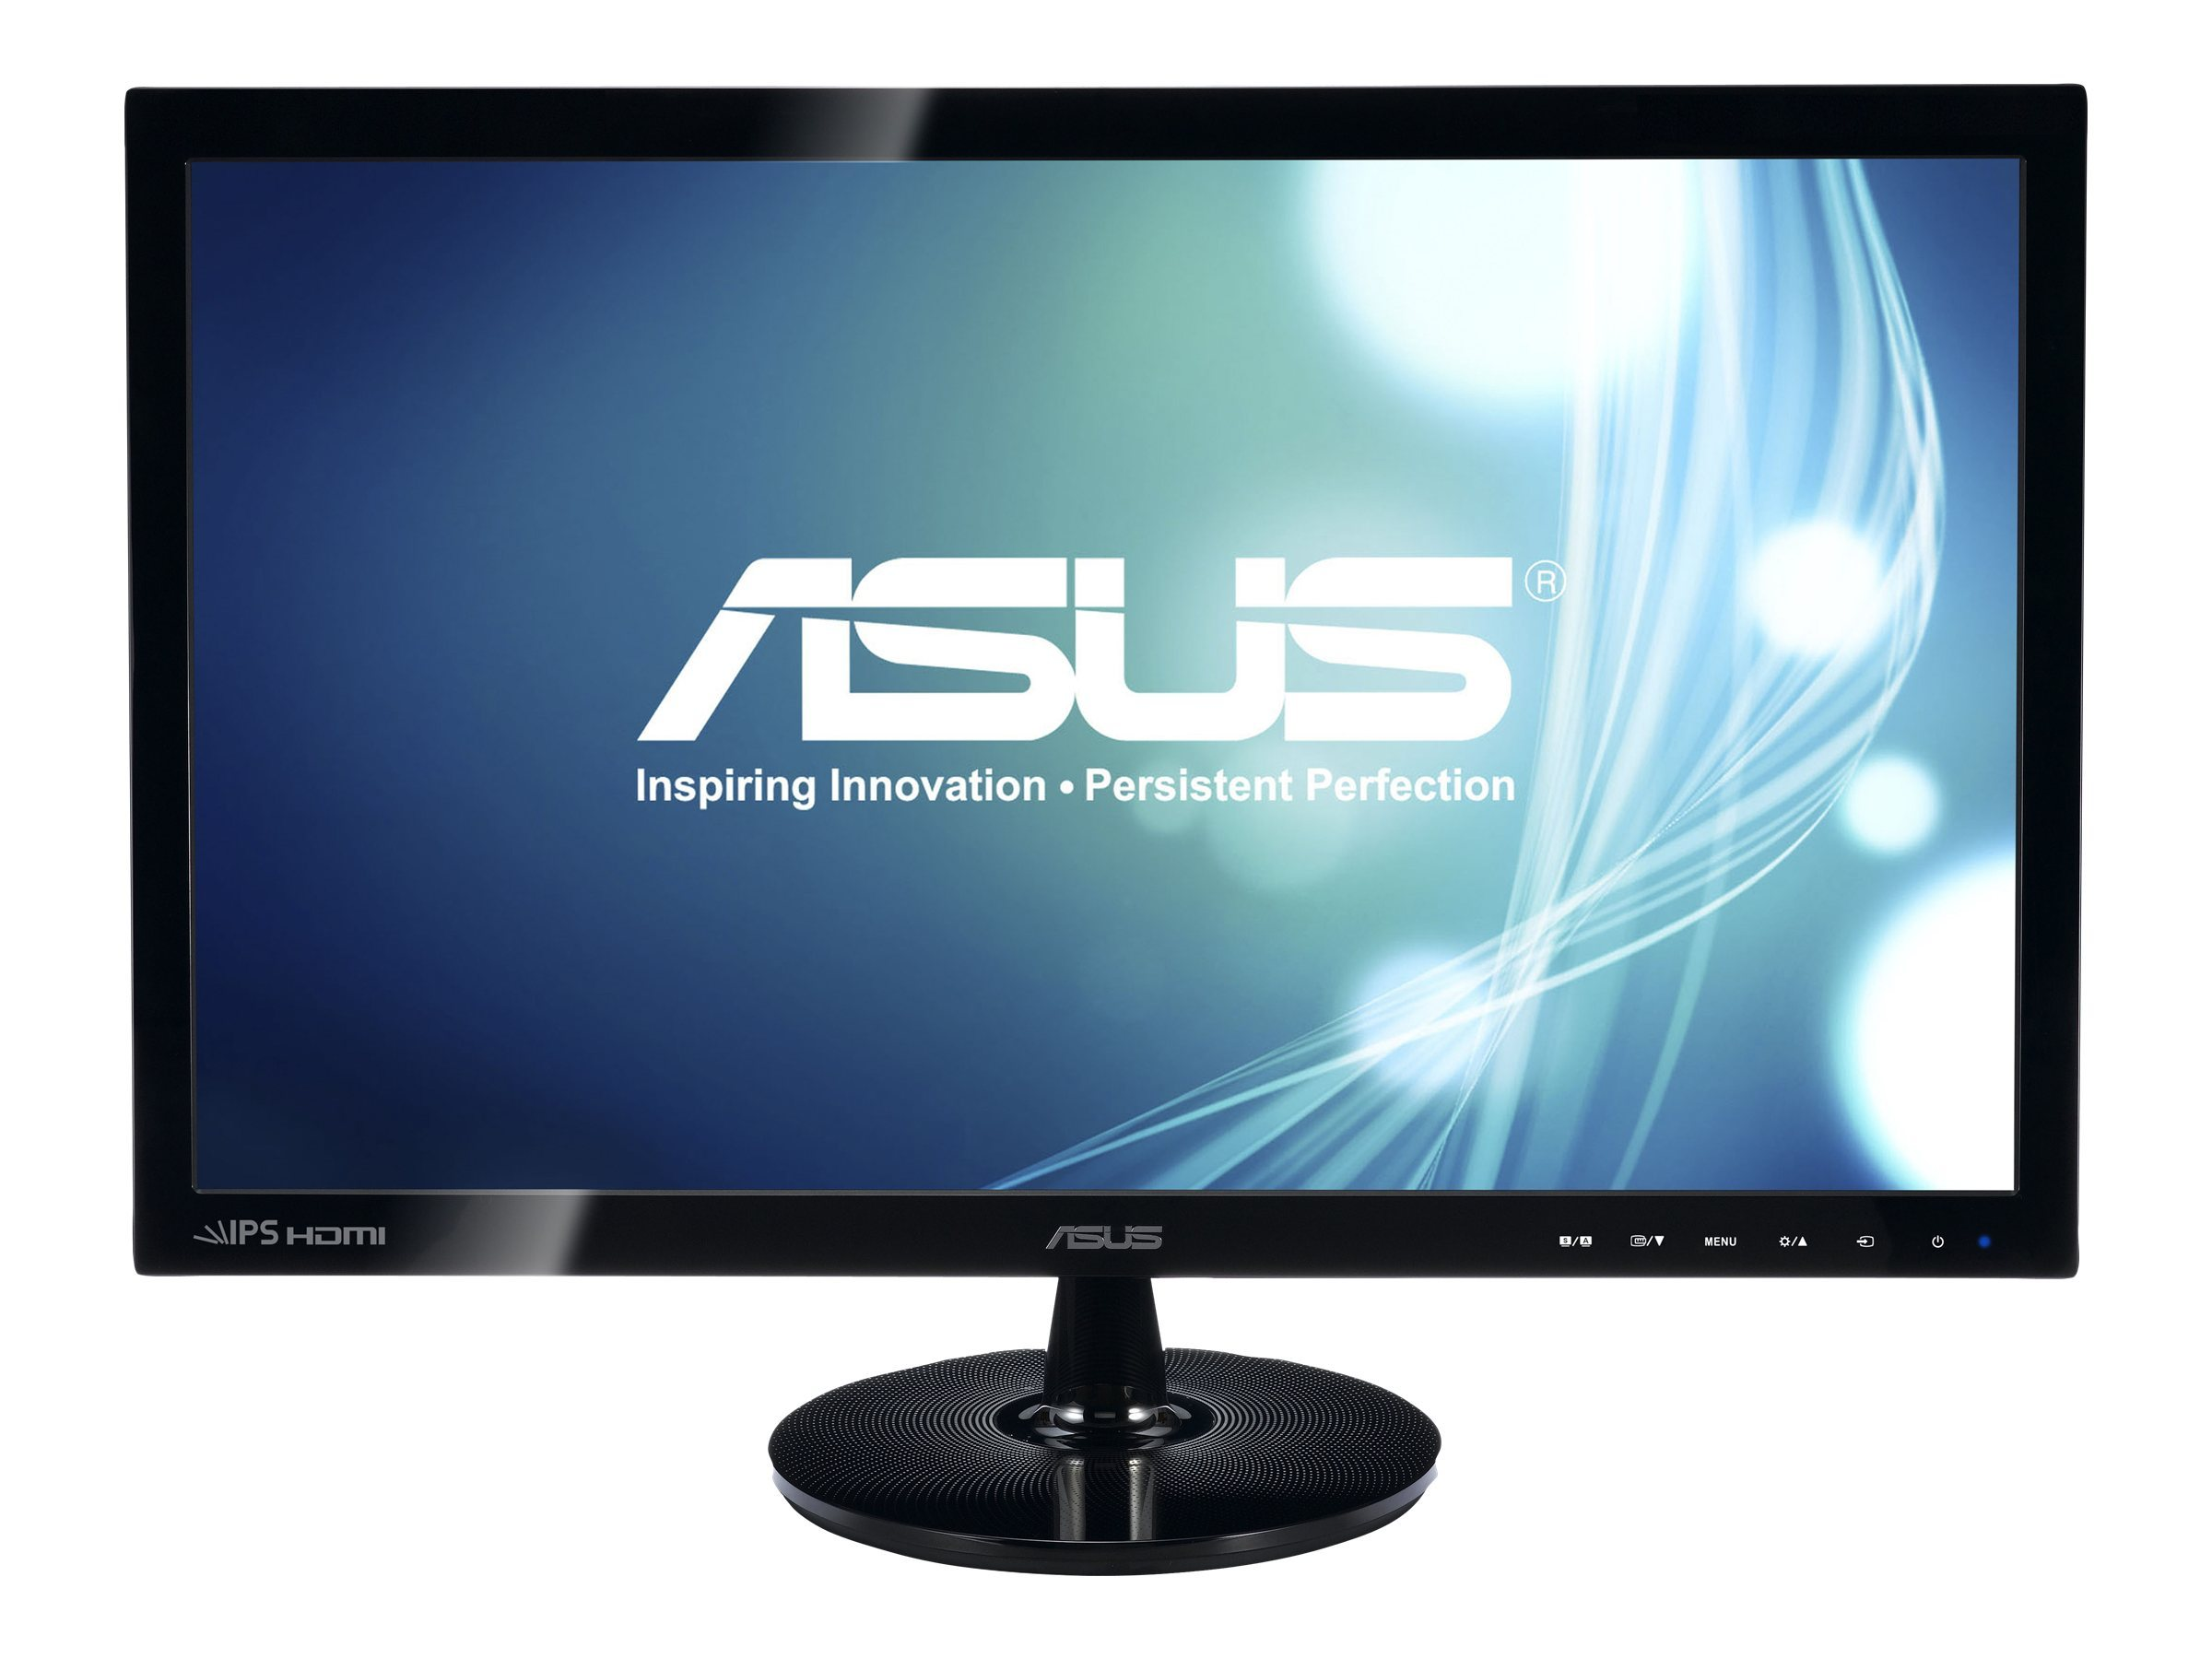 Asus 23 VS239H-P LED-LCD Full HD Monitor, Black, VS239H-P, 14450580, Monitors